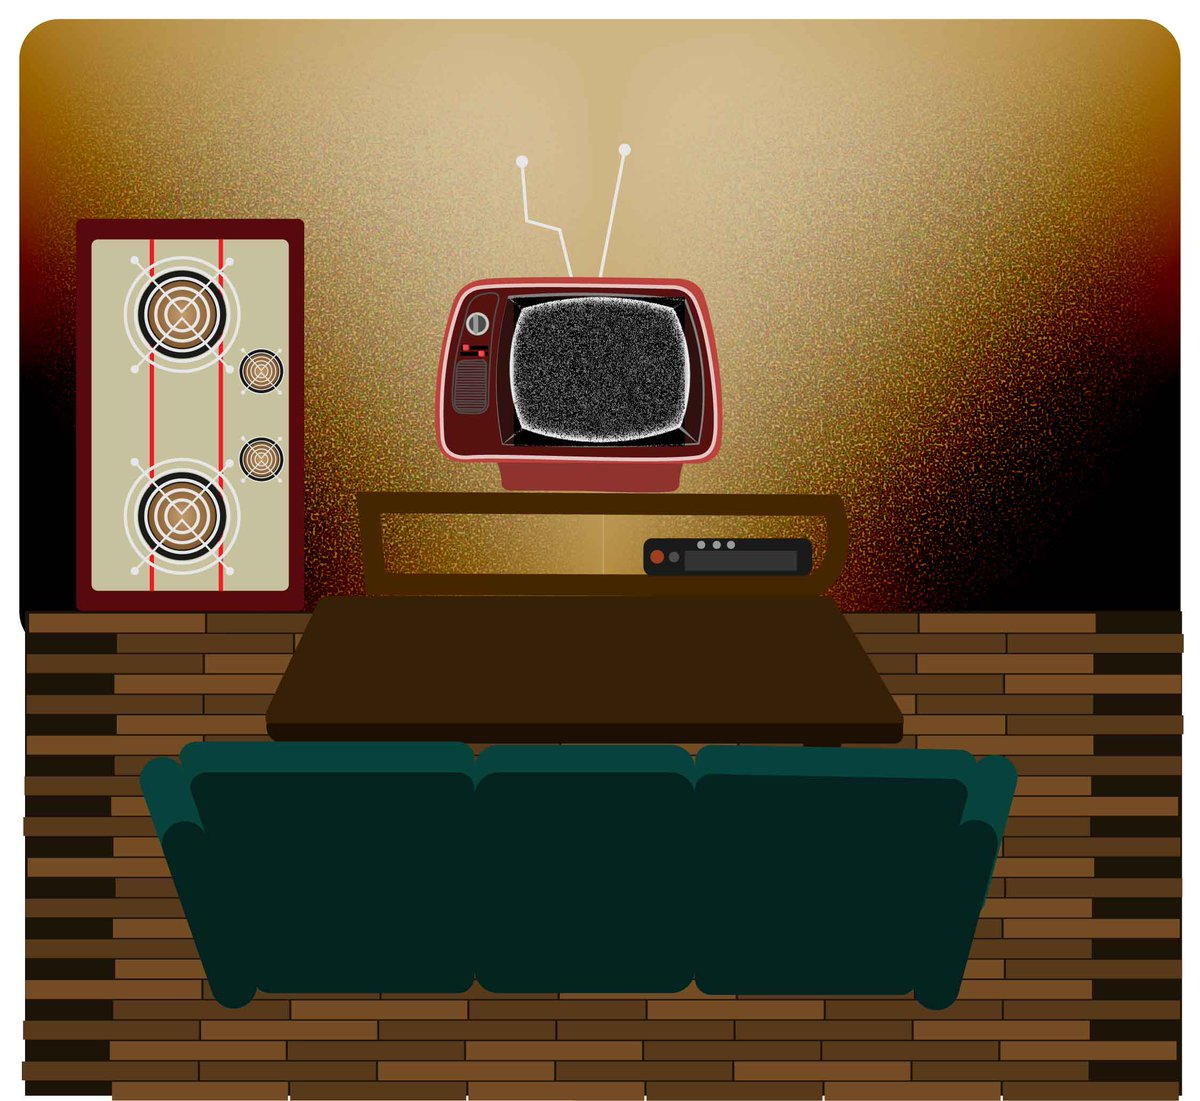 The 1st time we saw cosmic microwave background was as noise on our analog TVs. #Staytooned #CMB #science #scitoons #scicomm #physics #space<br>http://pic.twitter.com/fnlPvjU42i